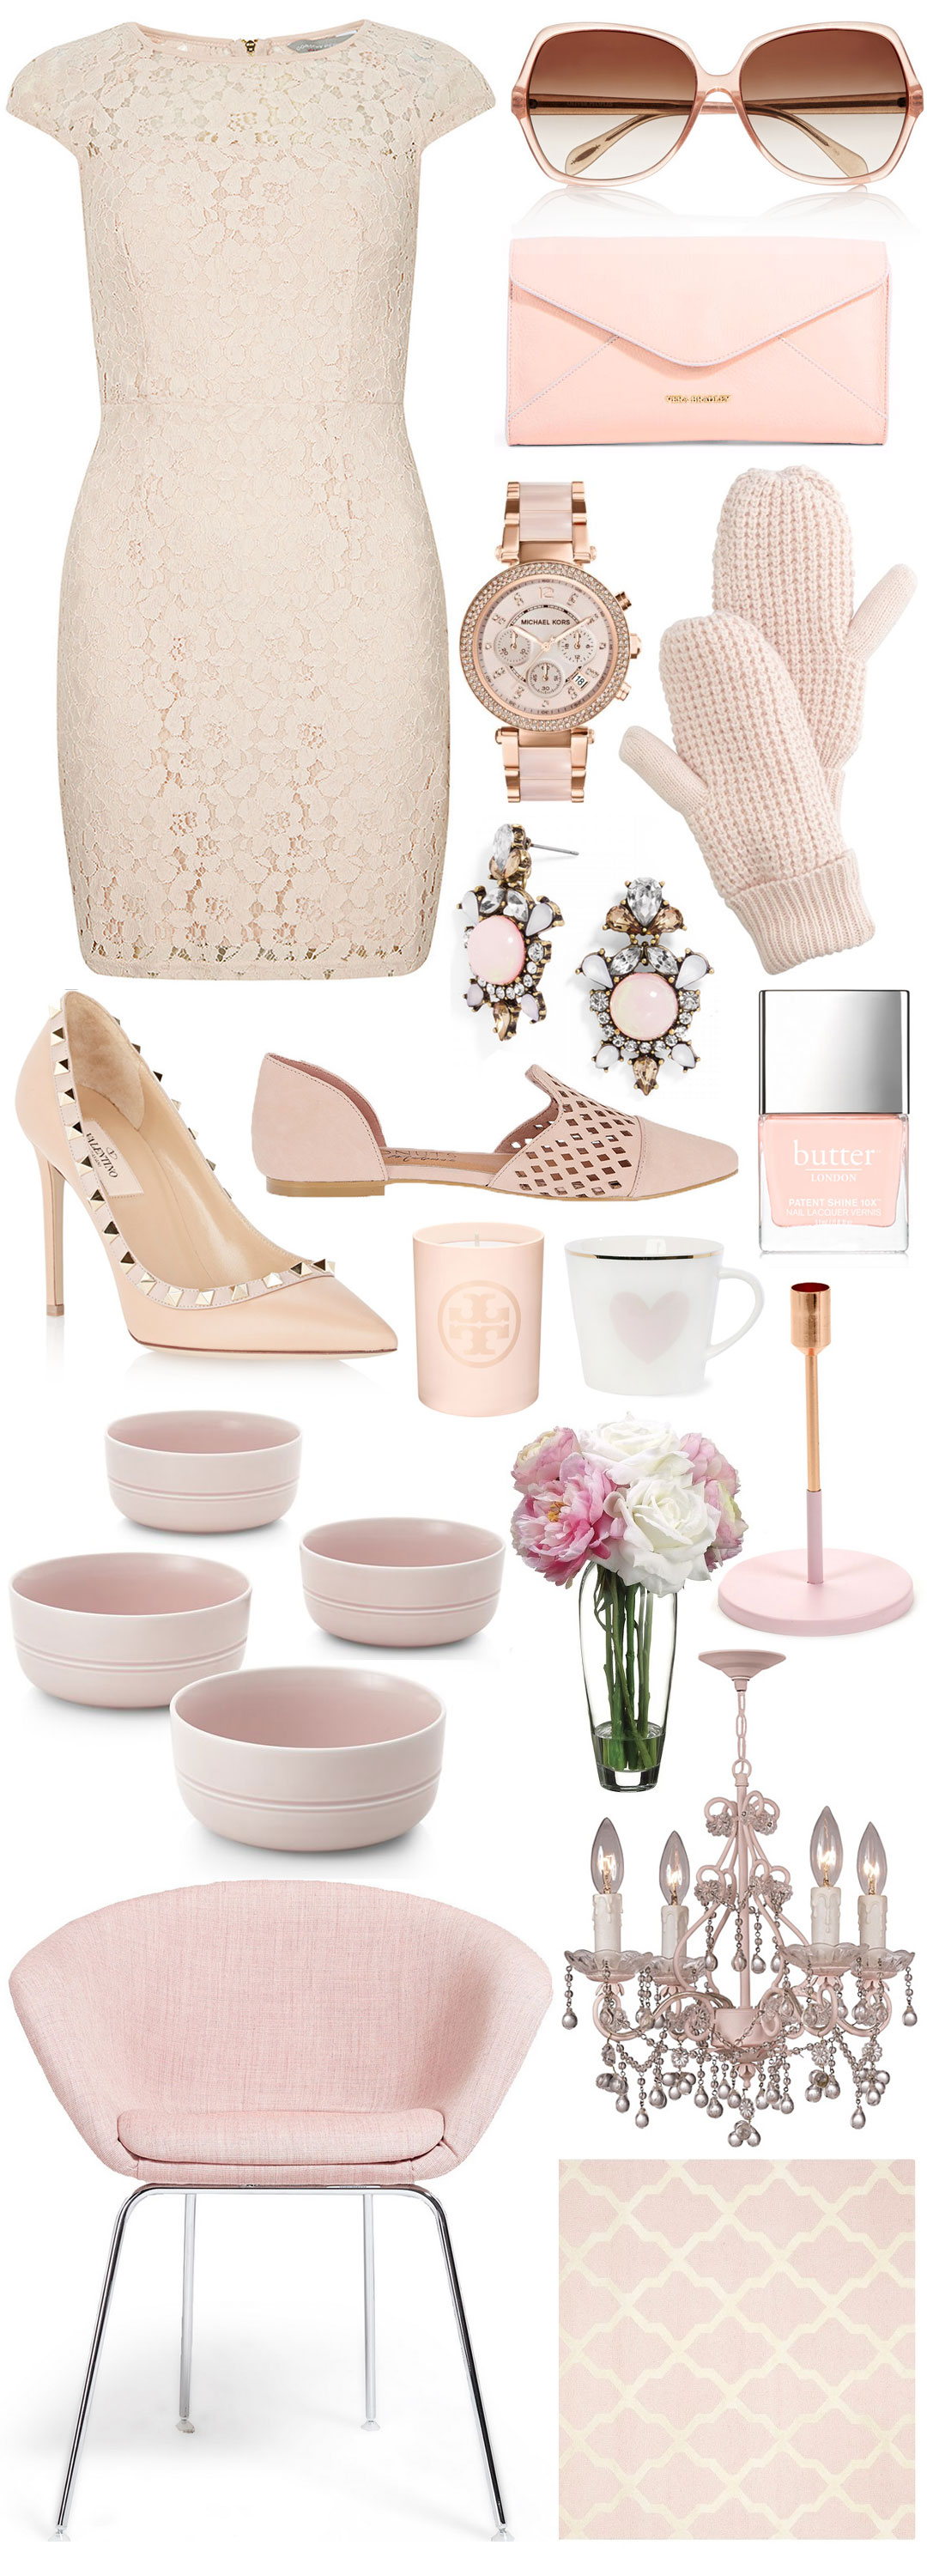 2015-Fall-Colors-Blush-Pink-Trend